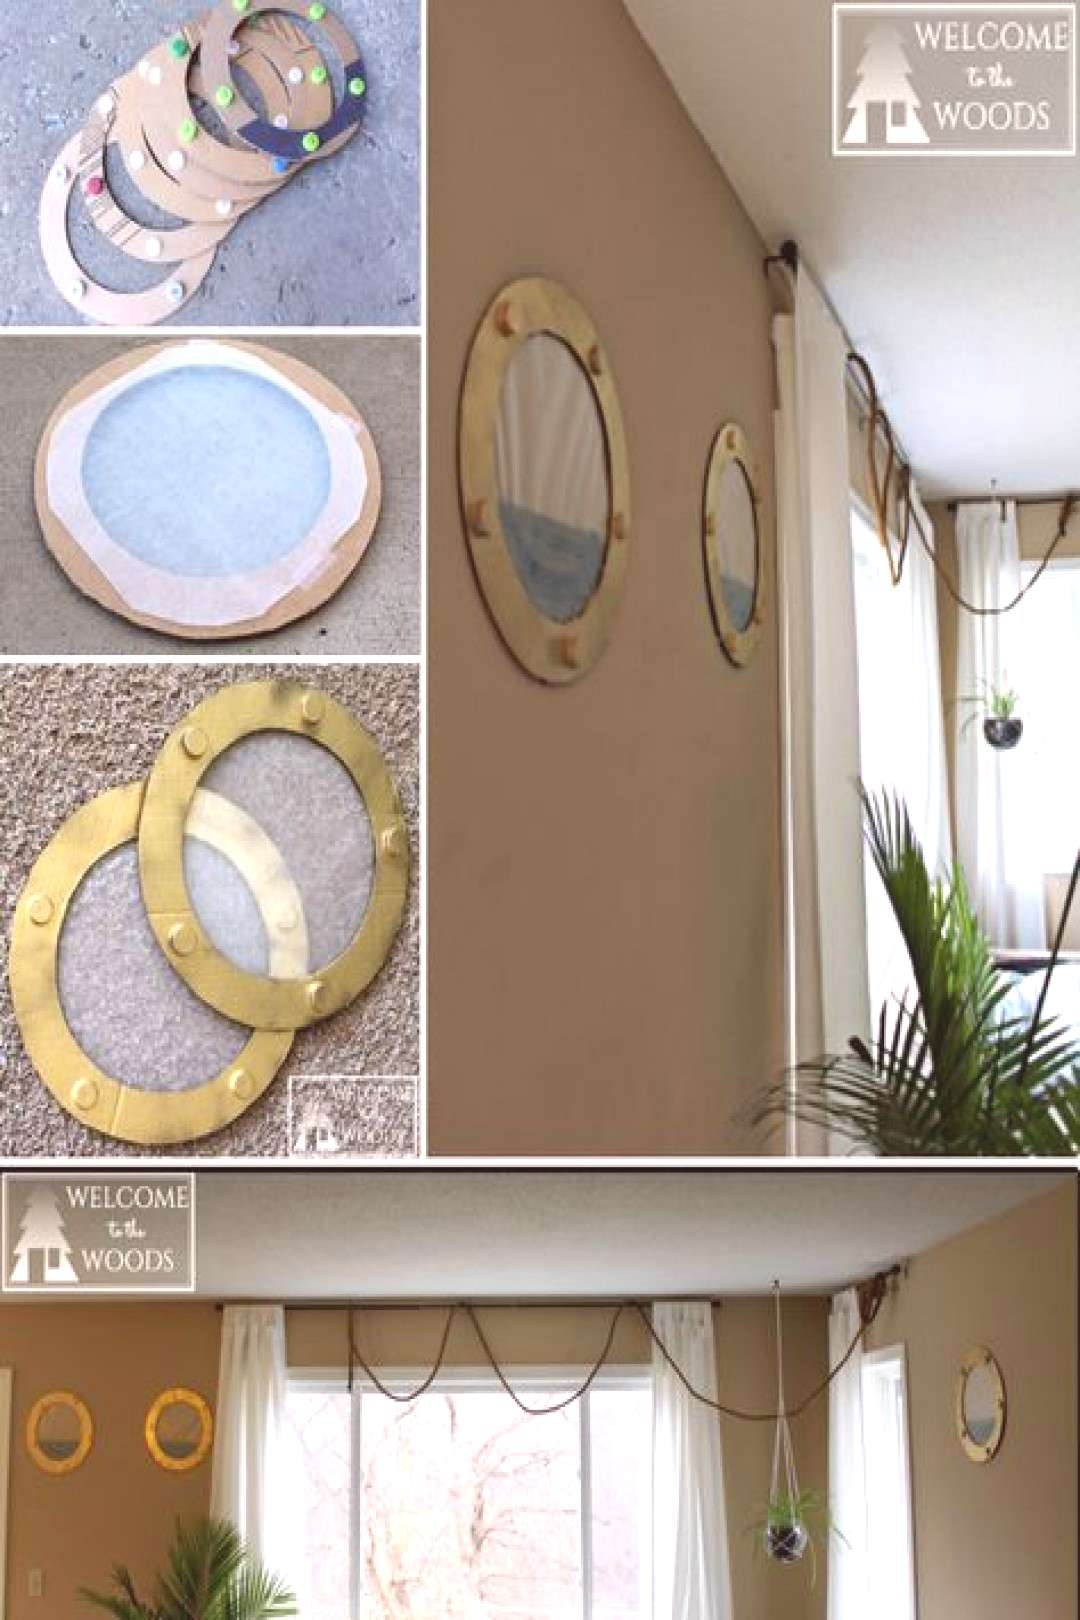 How to make faux portholes for your next pirate or ship theme birthday party celebration. I really